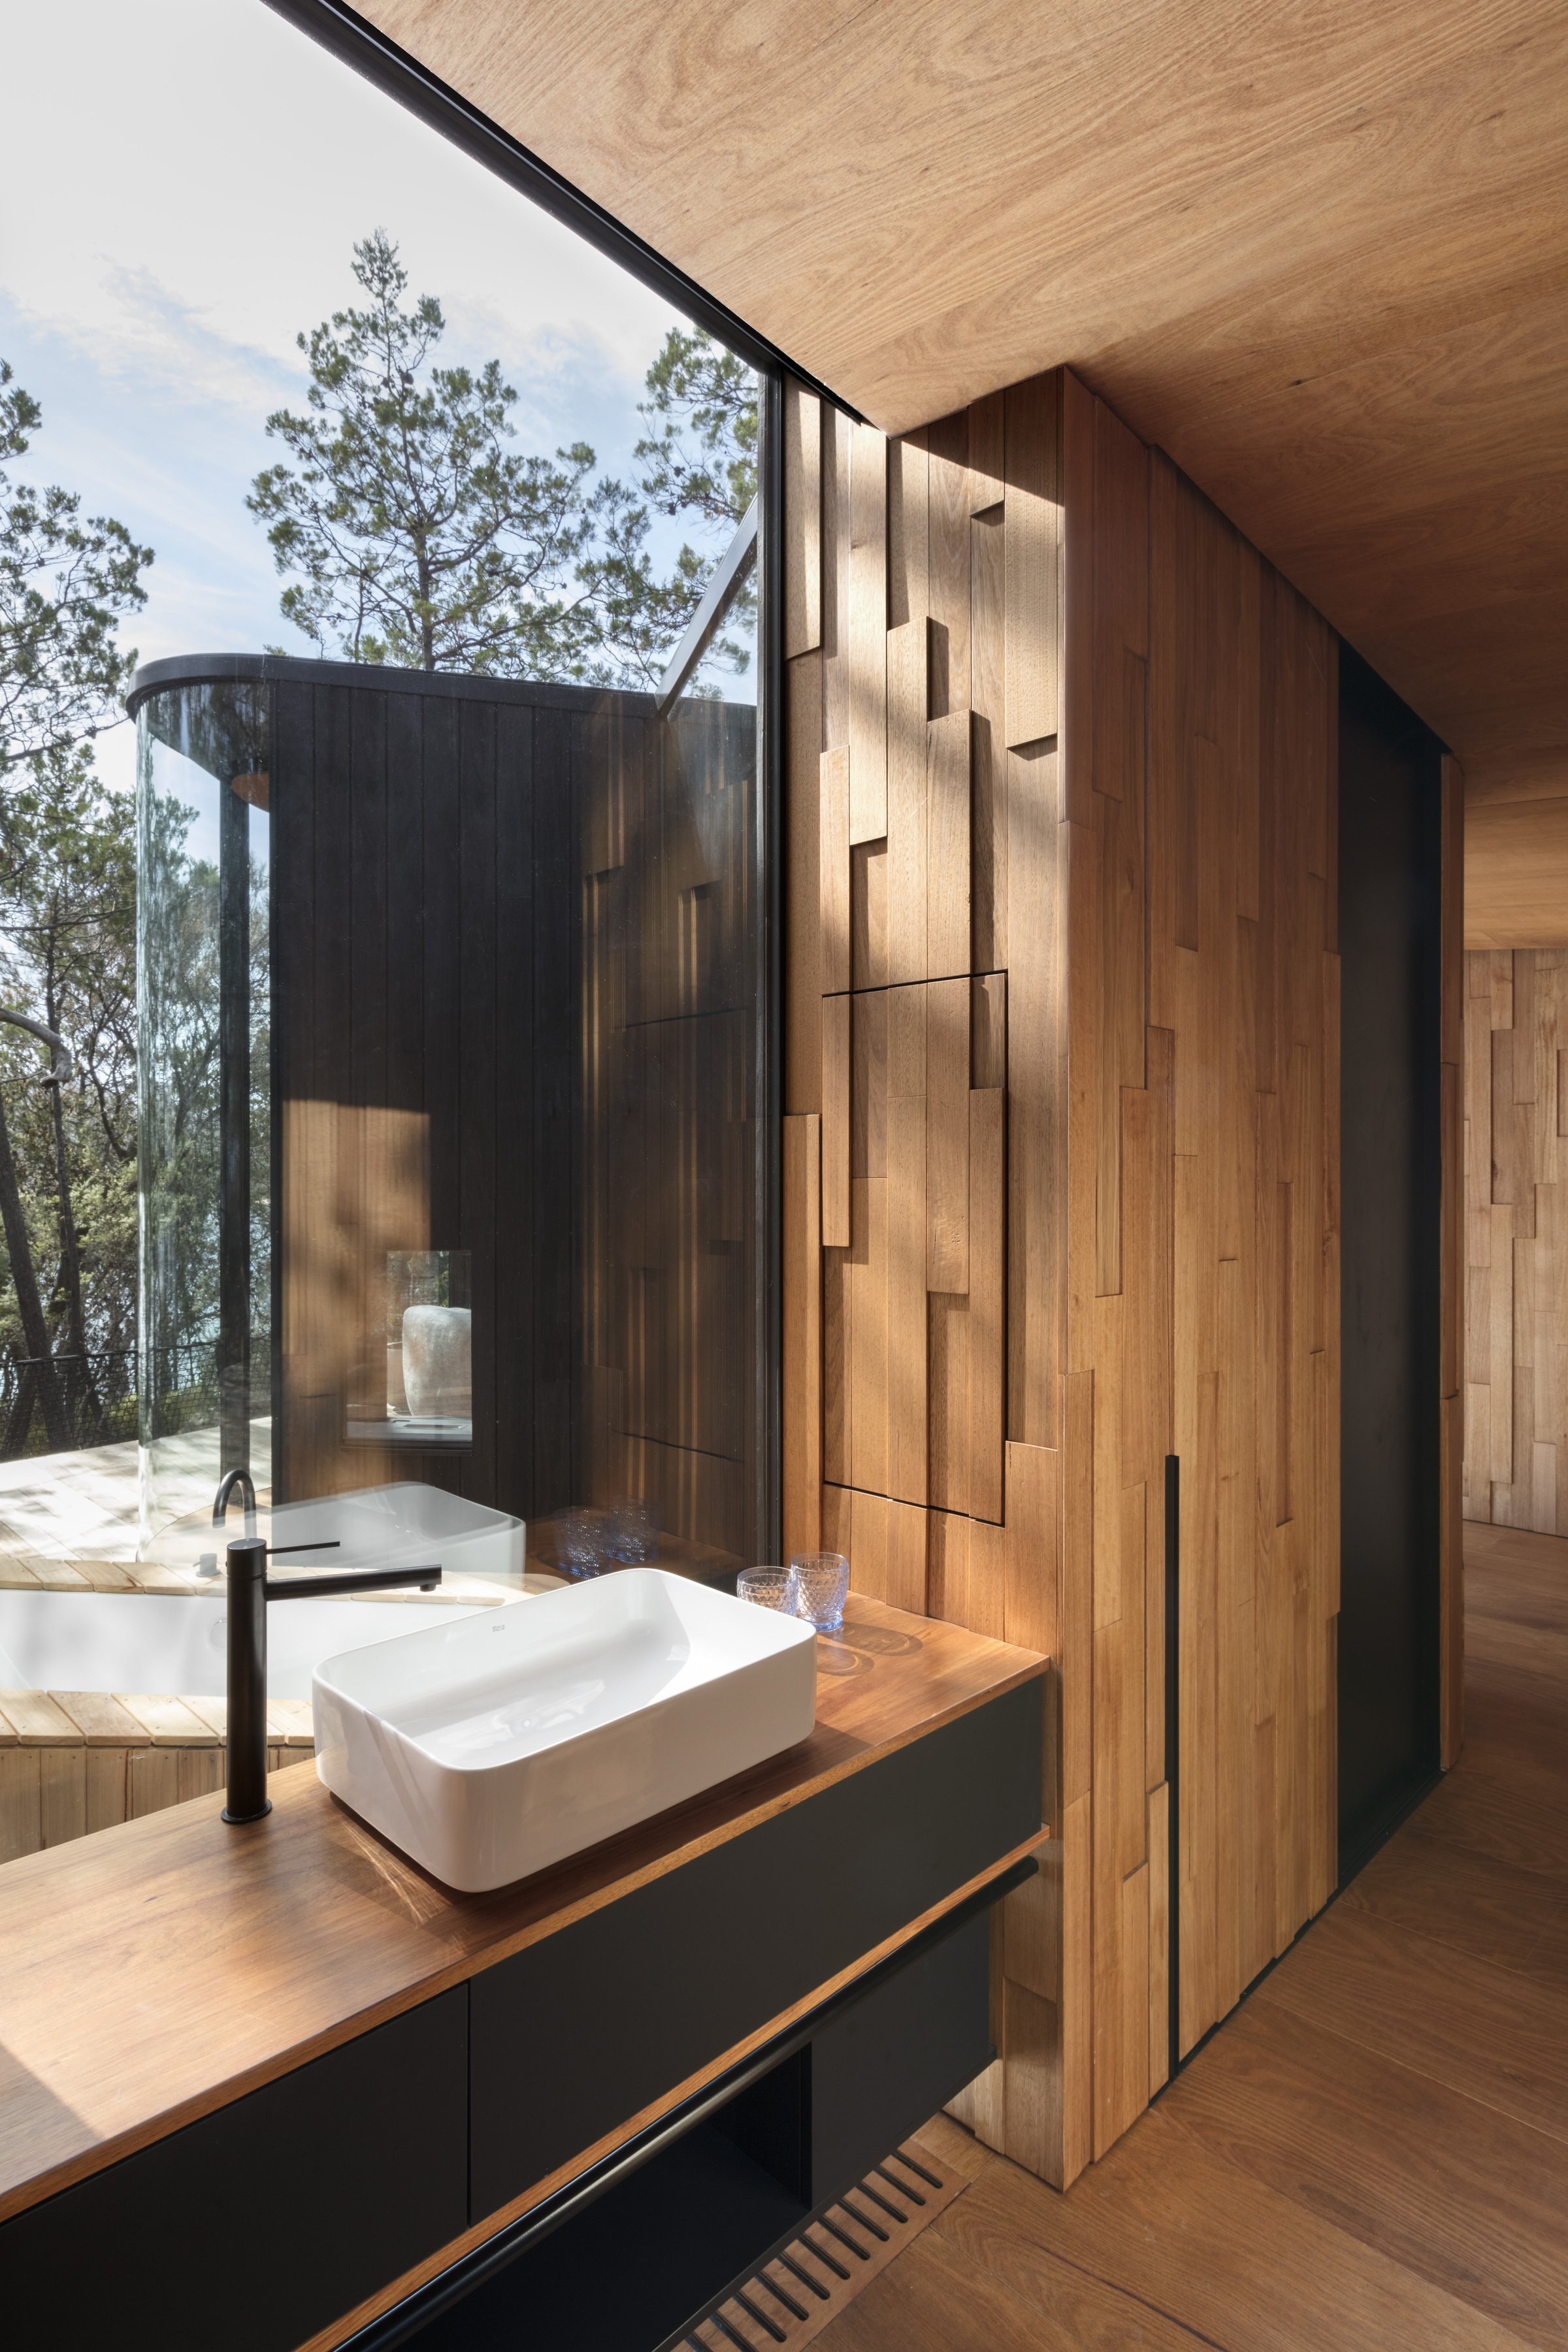 Wall linings and joinery - Freycinet Coastal Pavilions